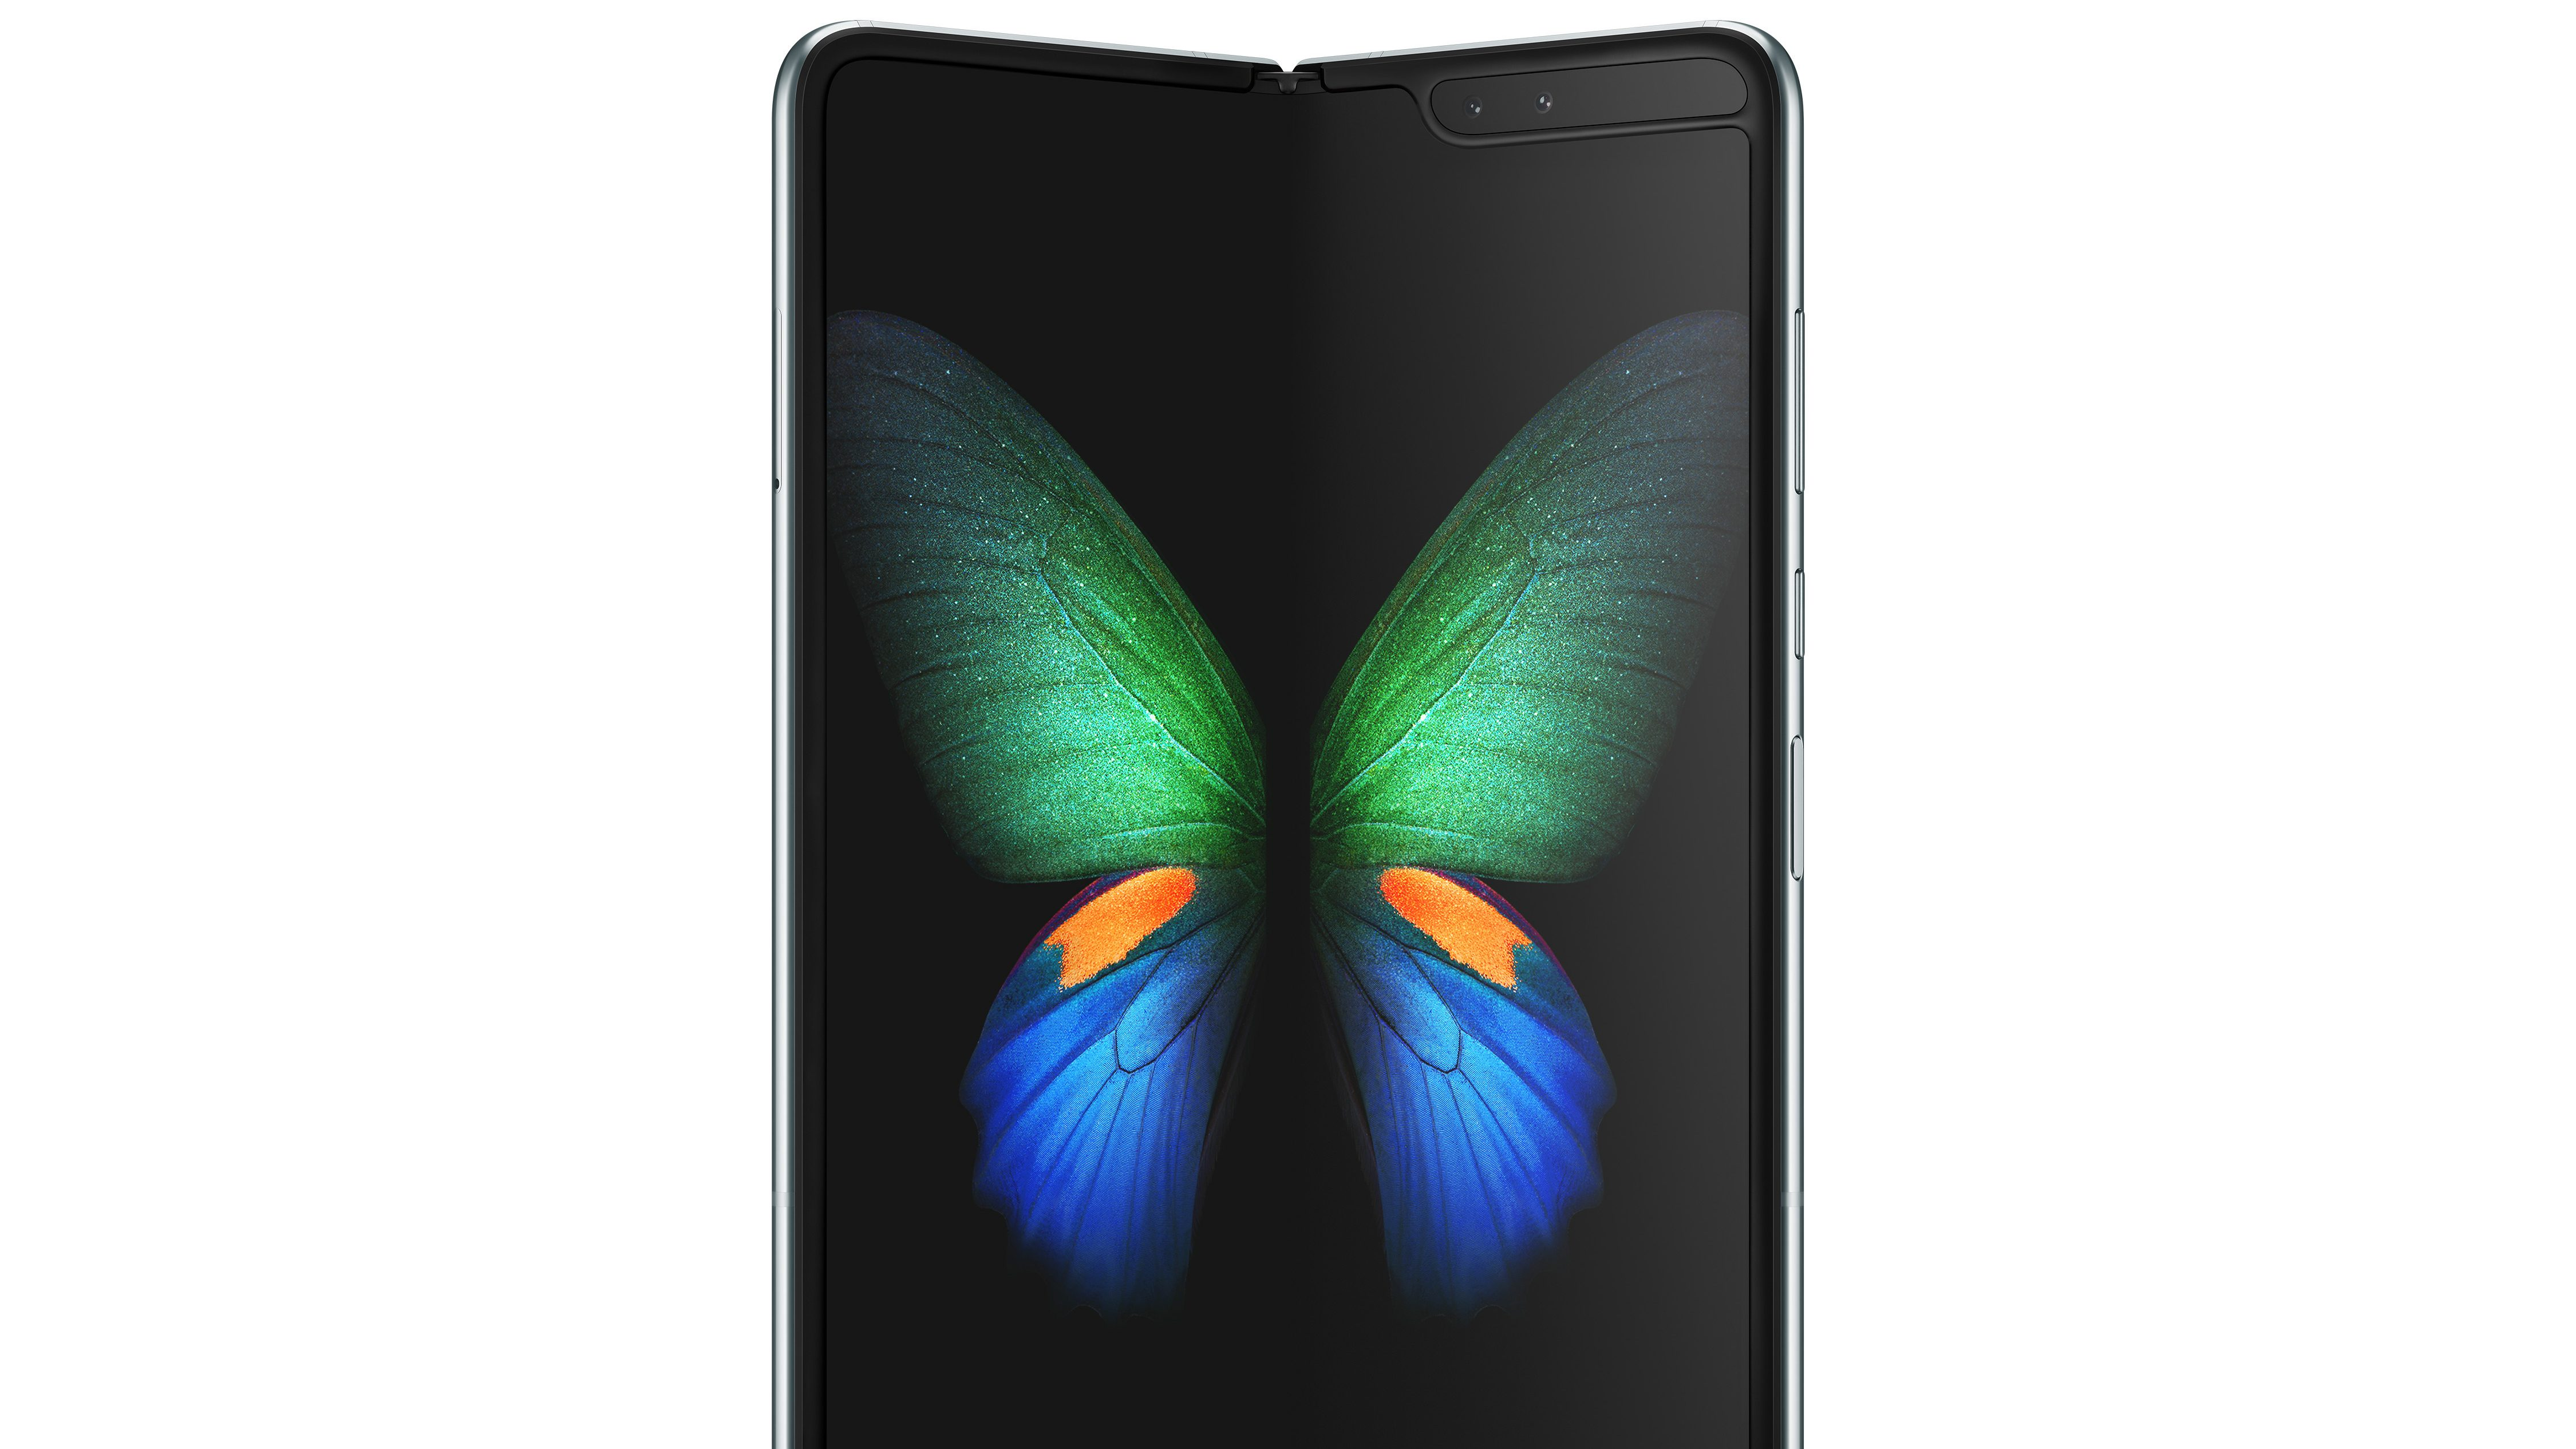 Samsung Galaxy Fold release date announced to be in September in selected countries.